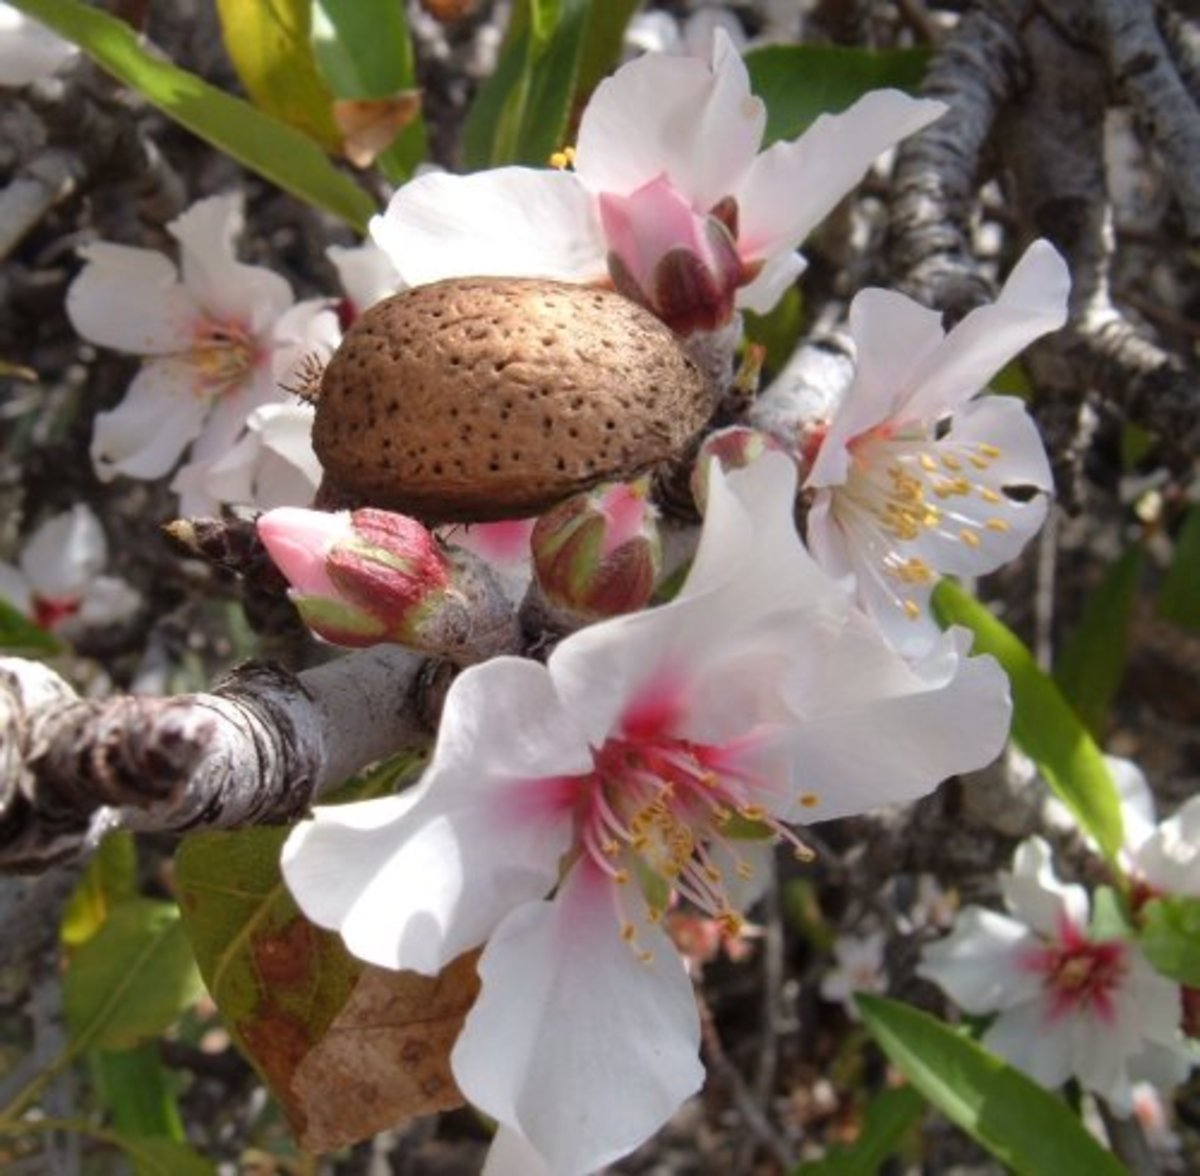 Almond blossom and nut